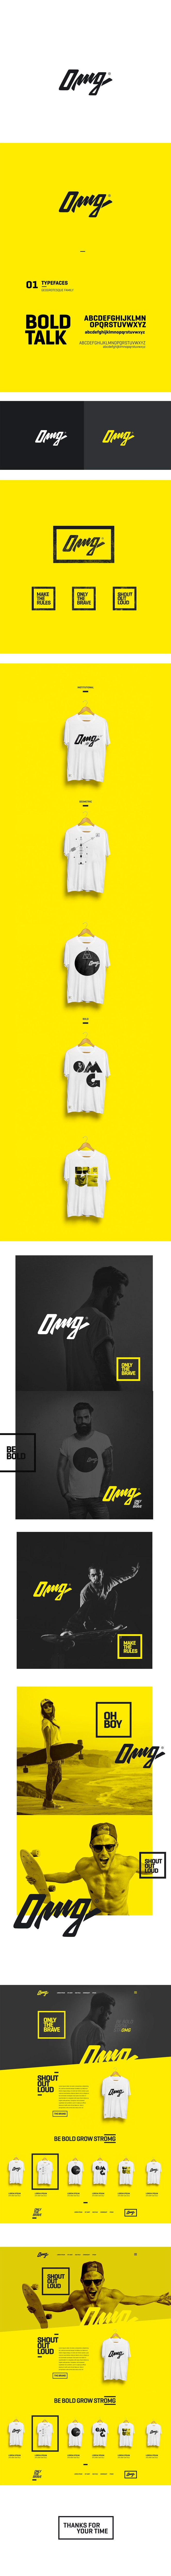 OMG Clothes - Branding Identity on Behance